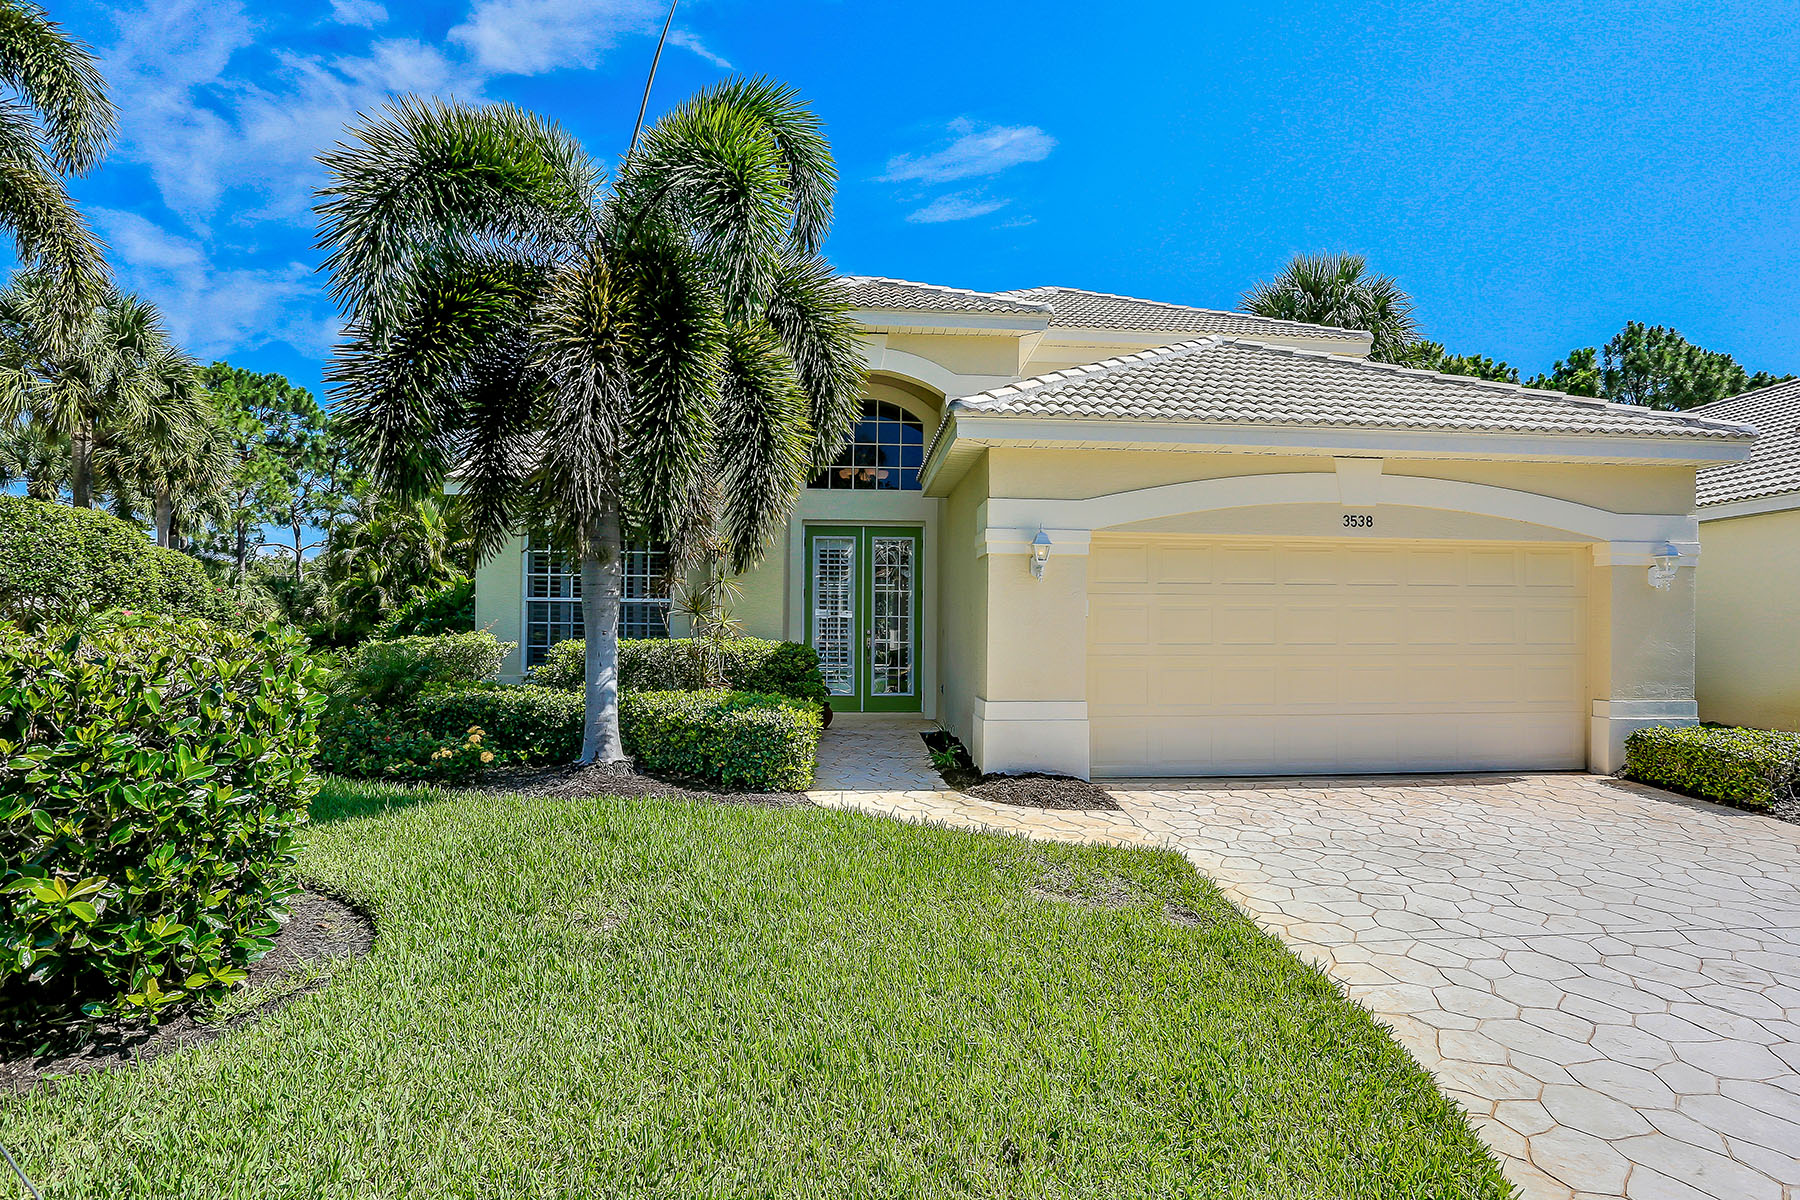 Single Family Homes for Sale at PELICAN LANDING-HERON GLEN 3538 Heron Glen Court, Estero, Florida 34134 United States